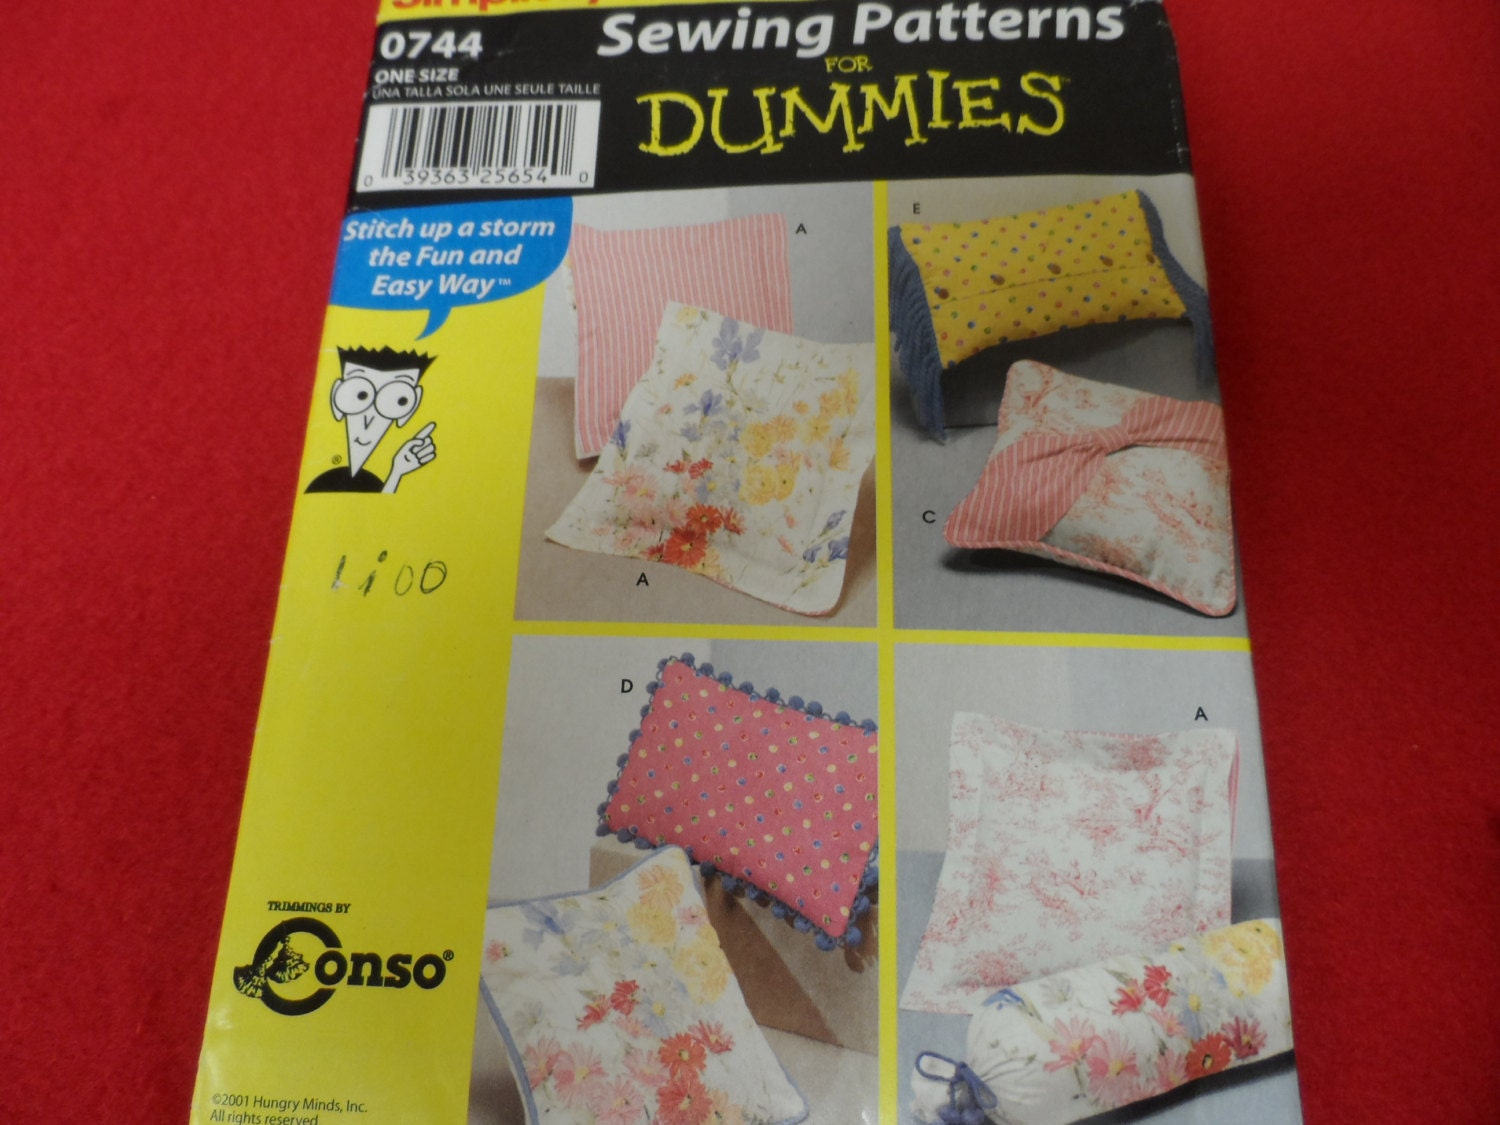 sewing patterns for dummies pdf